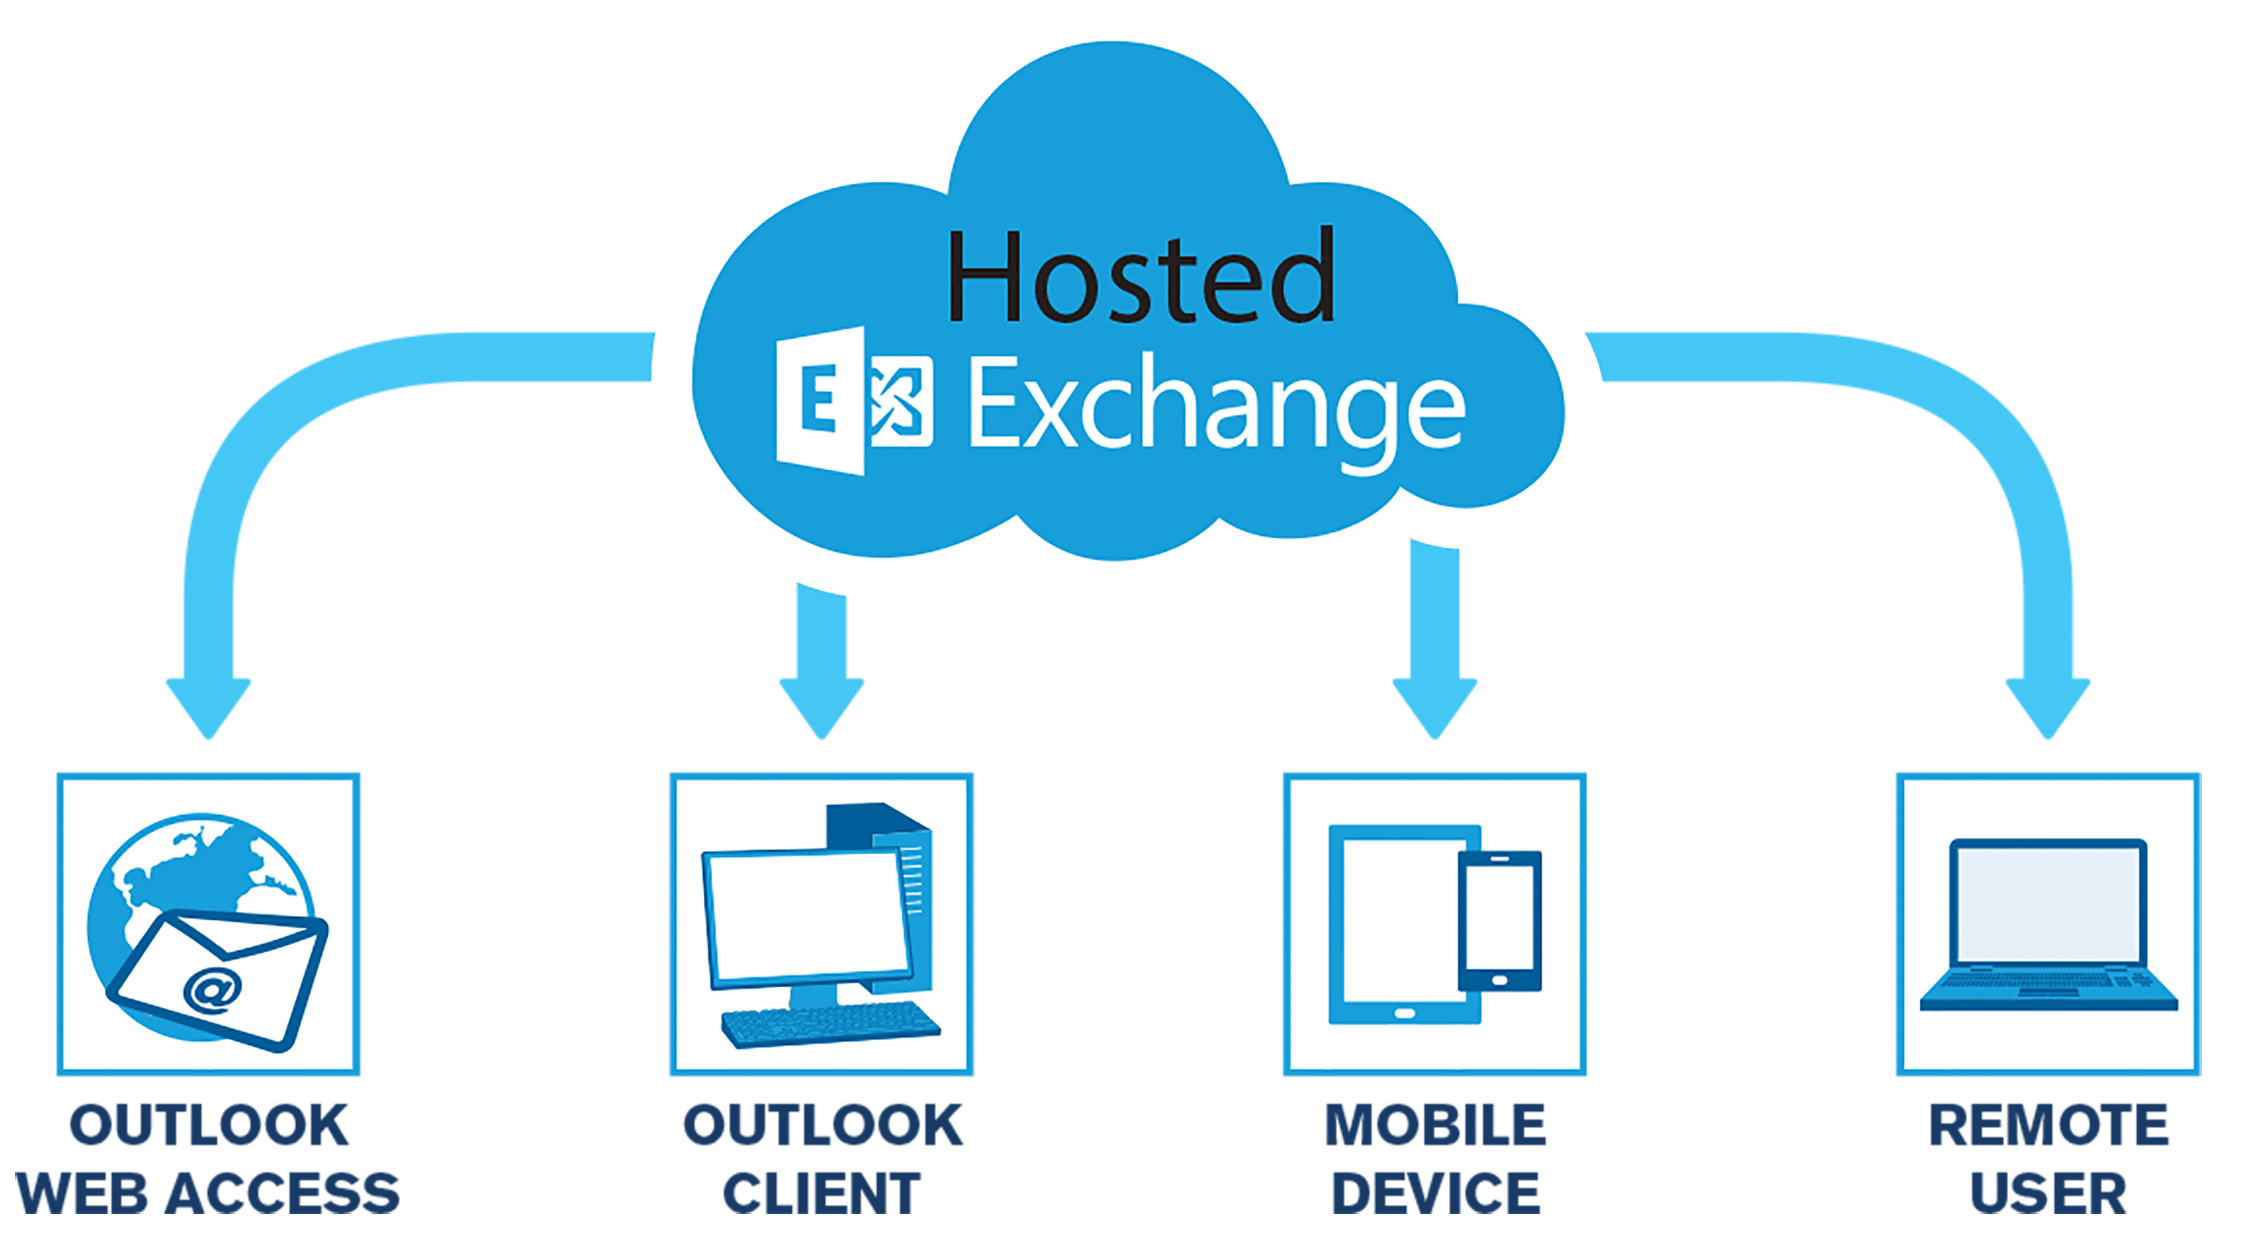 hosted-exchange-email